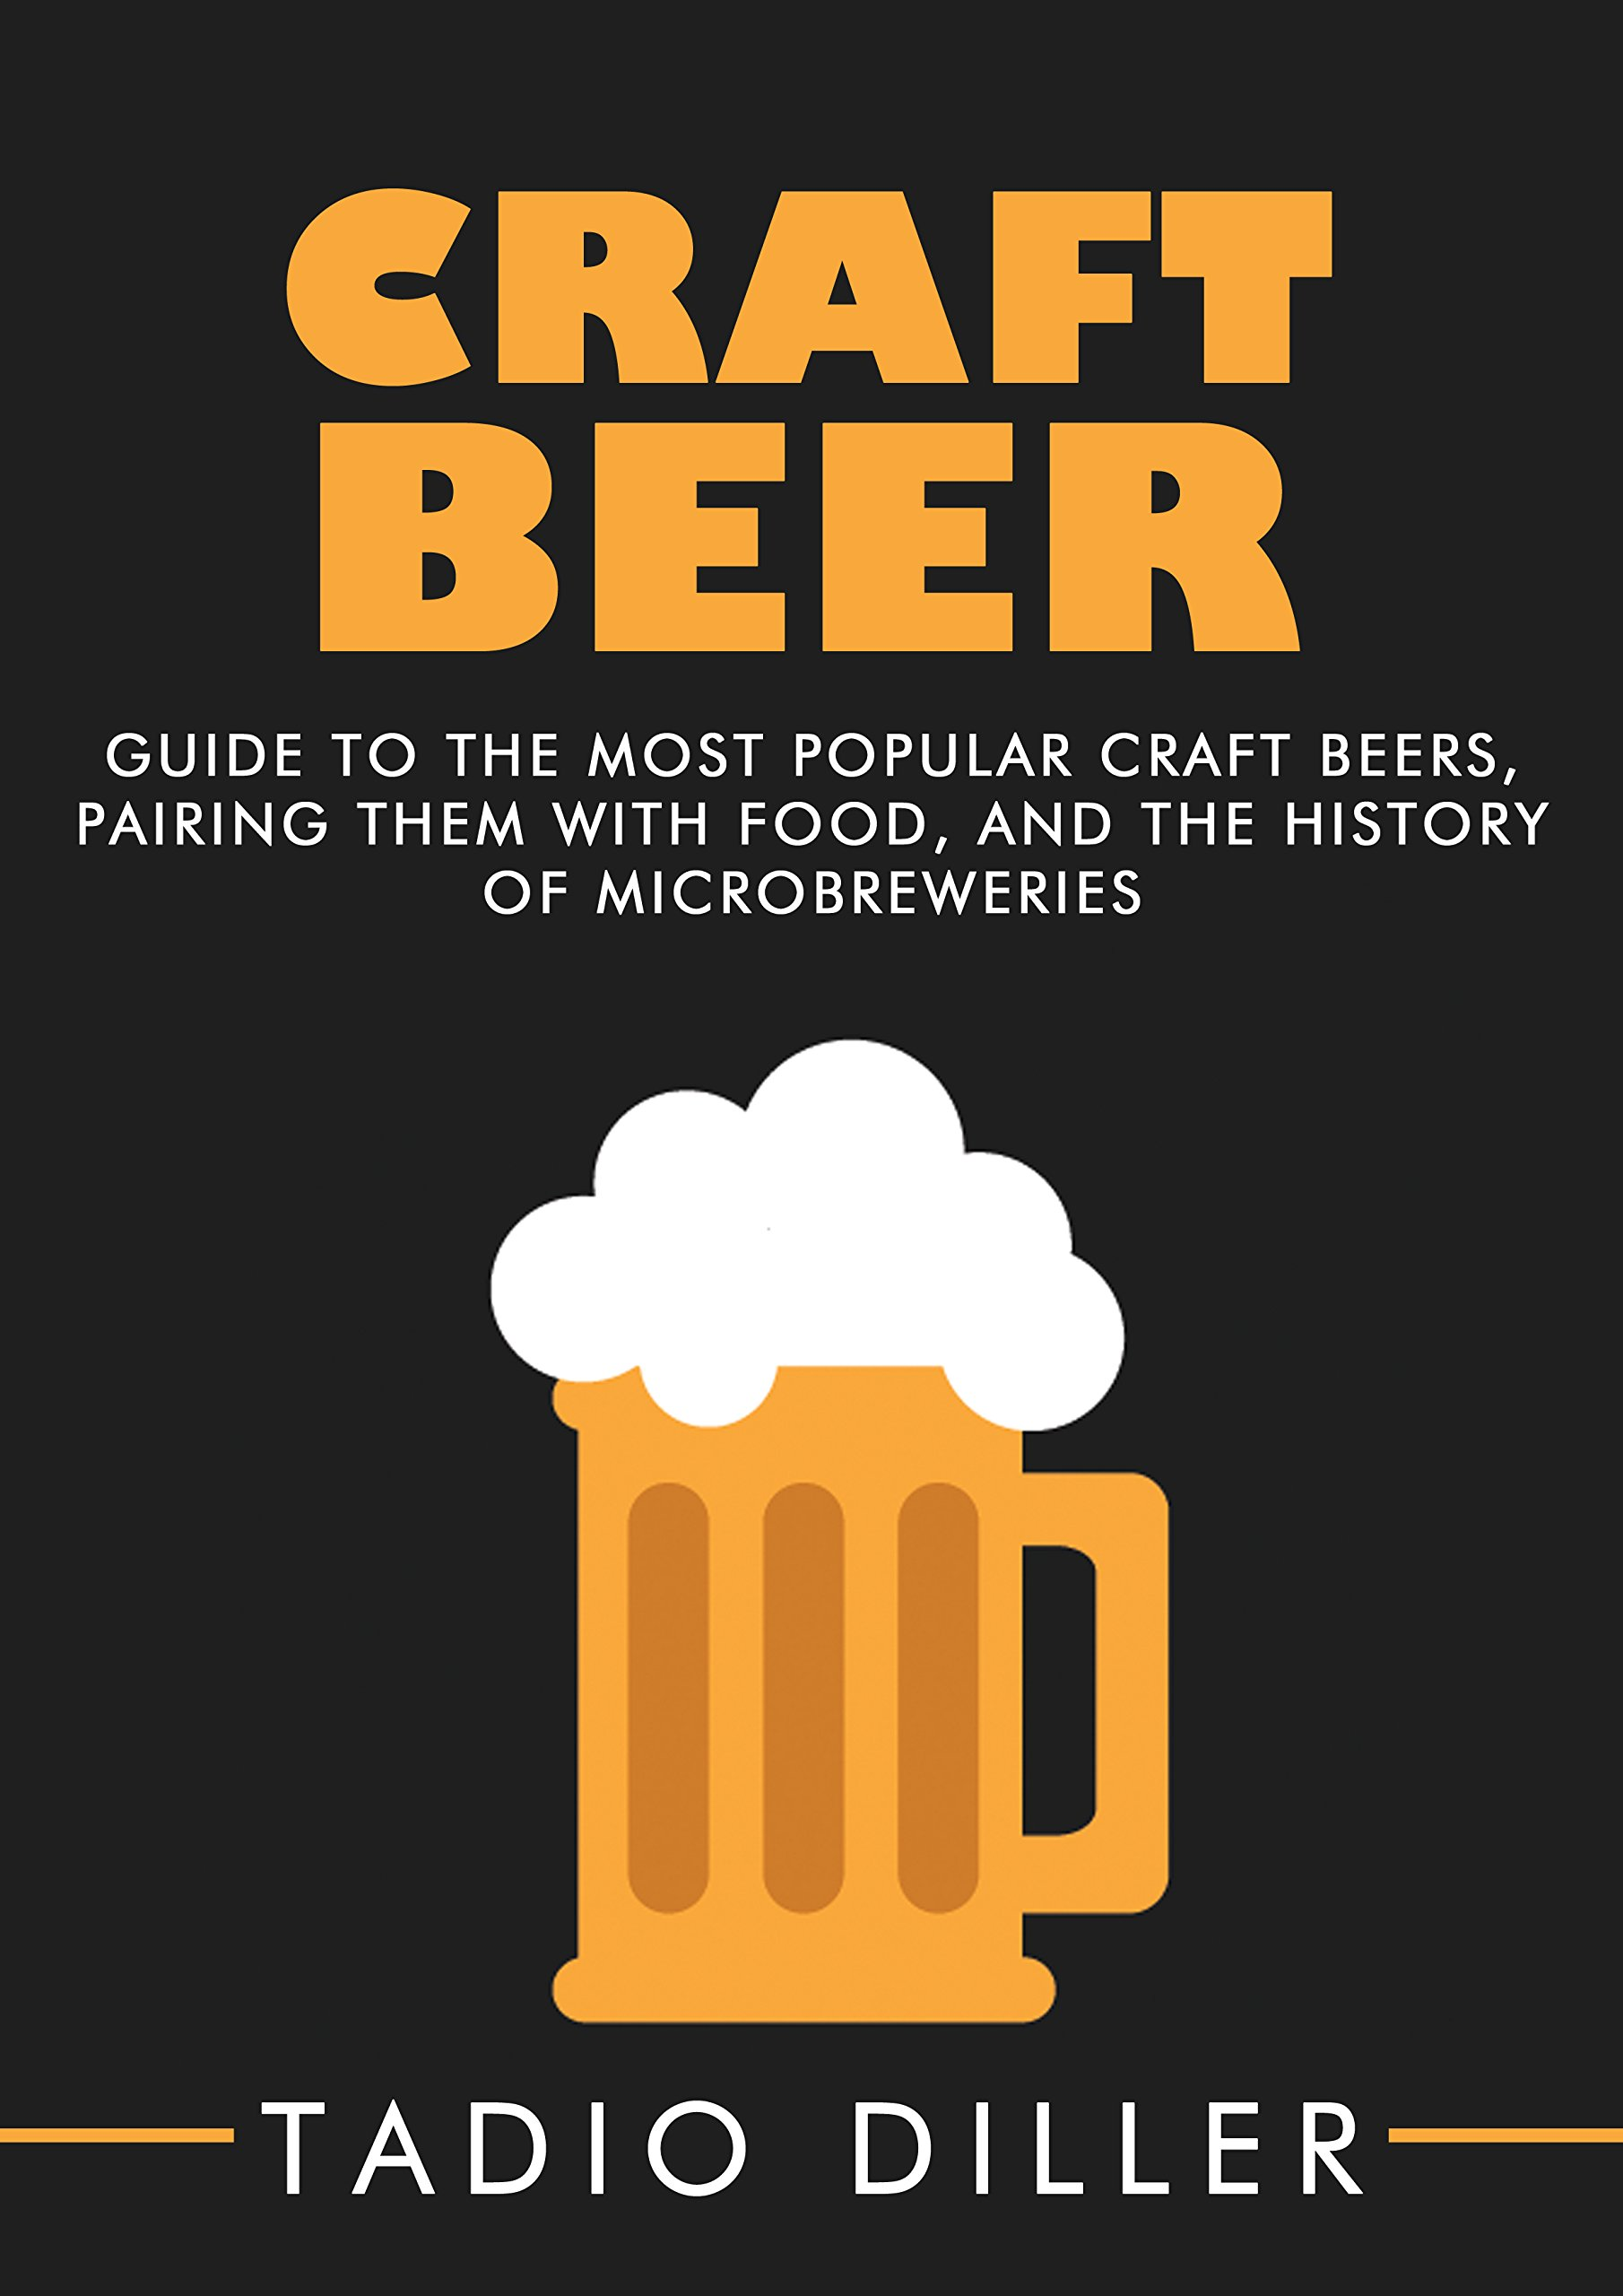 Craft Beer: Guide to the Most Popular Craft Beers Pairing Them with Food and the History of Microbreweries (Worlds Most Loved Drinks Book 7) (English Edition)